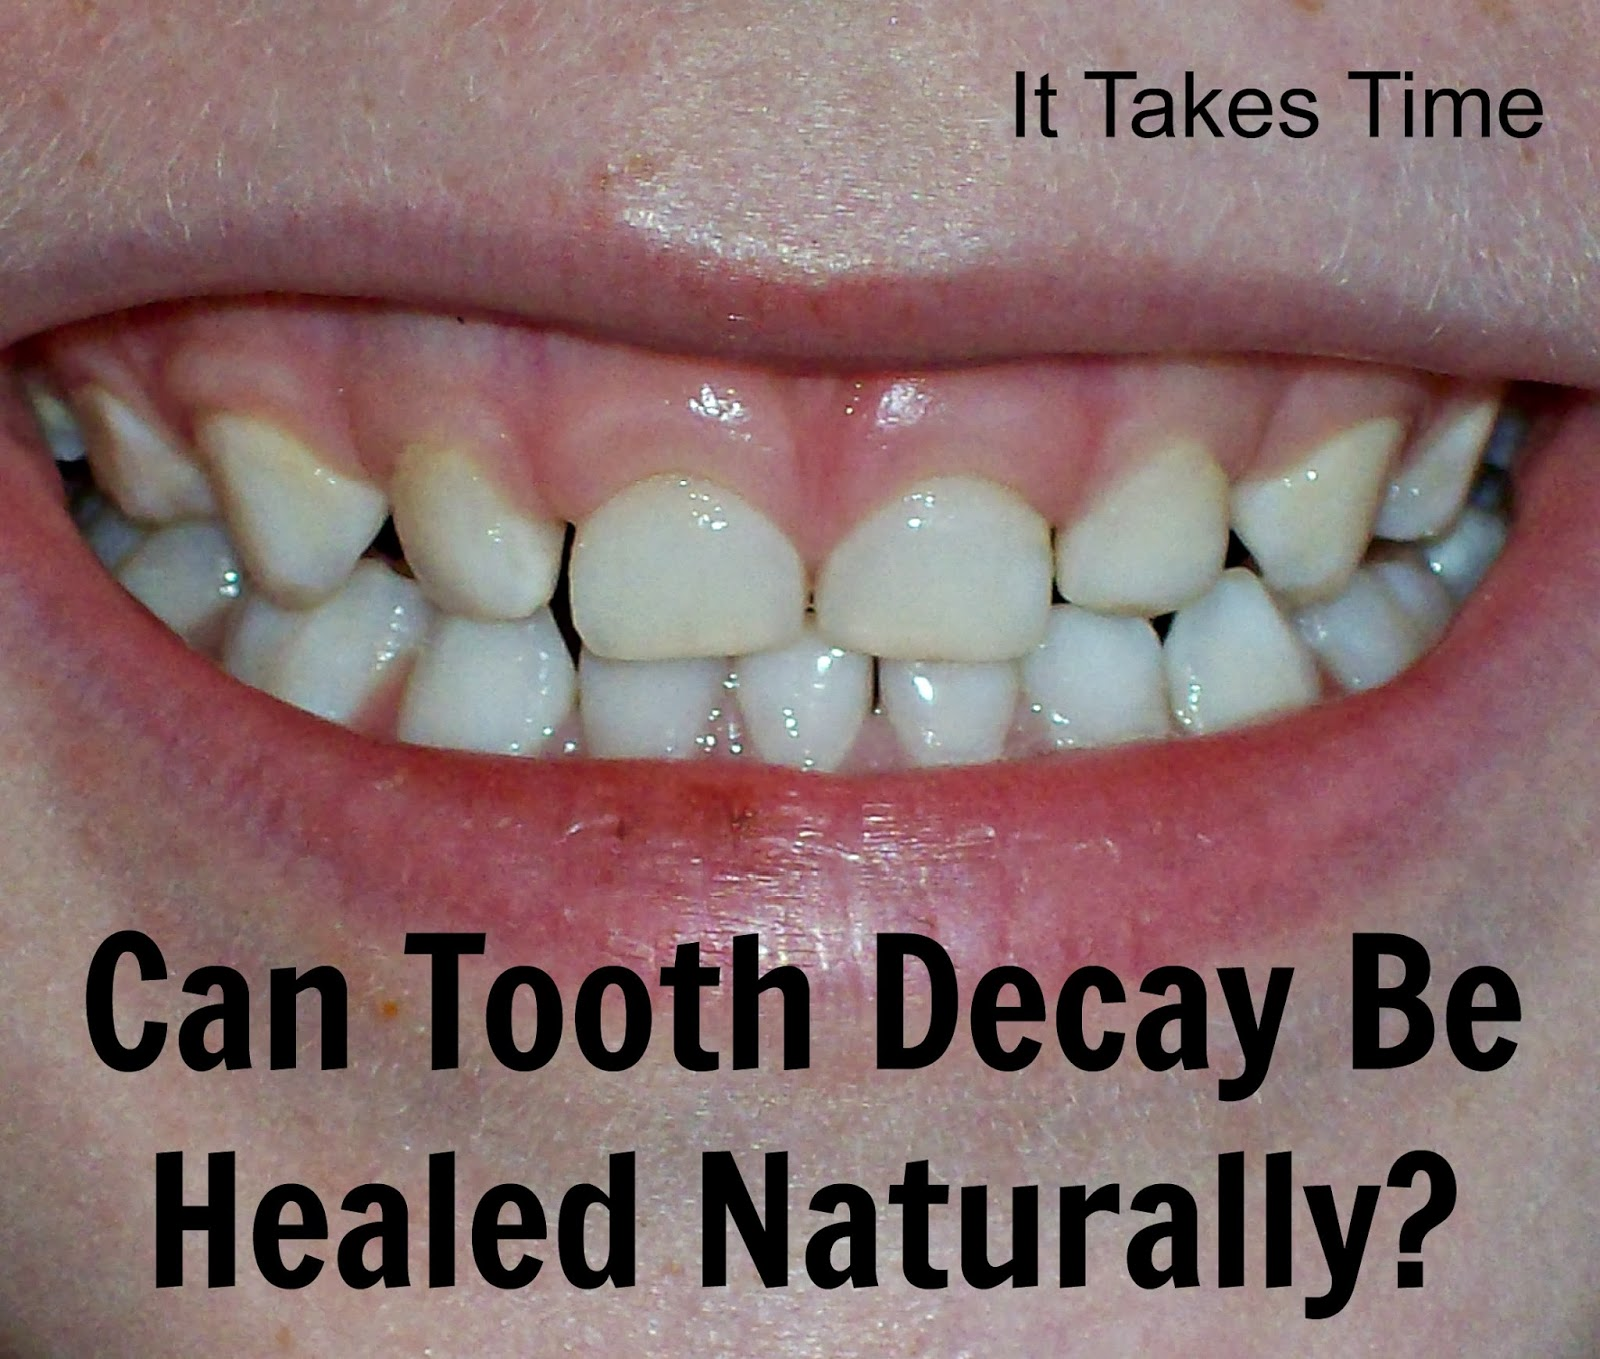 Can Tooth Decay be Healed Naturally? | It Takes Time